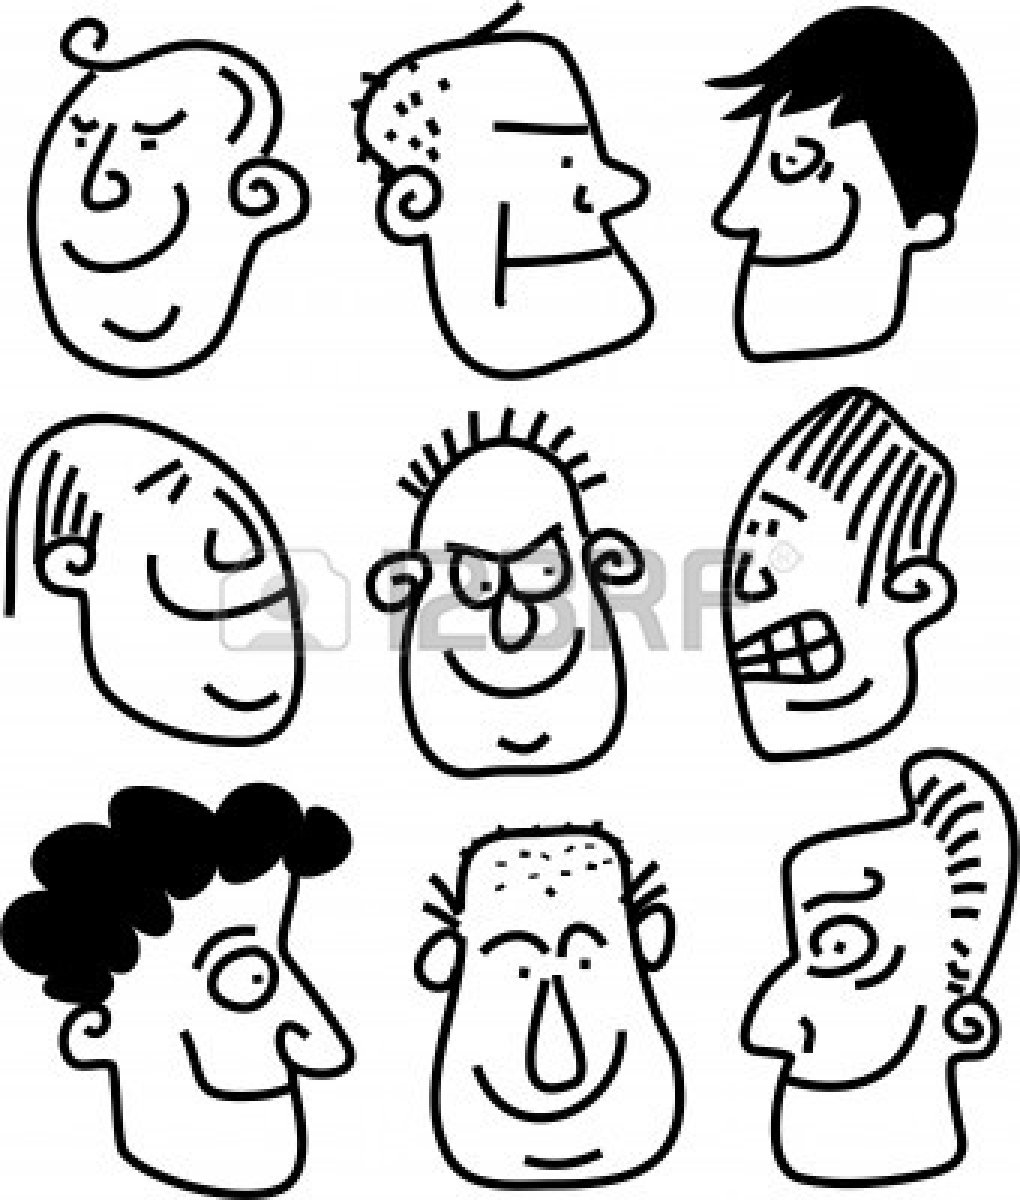 1020x1200 Drawing Funny Faces Crowd Of Funny Whimsical Cartoon Funny Faces